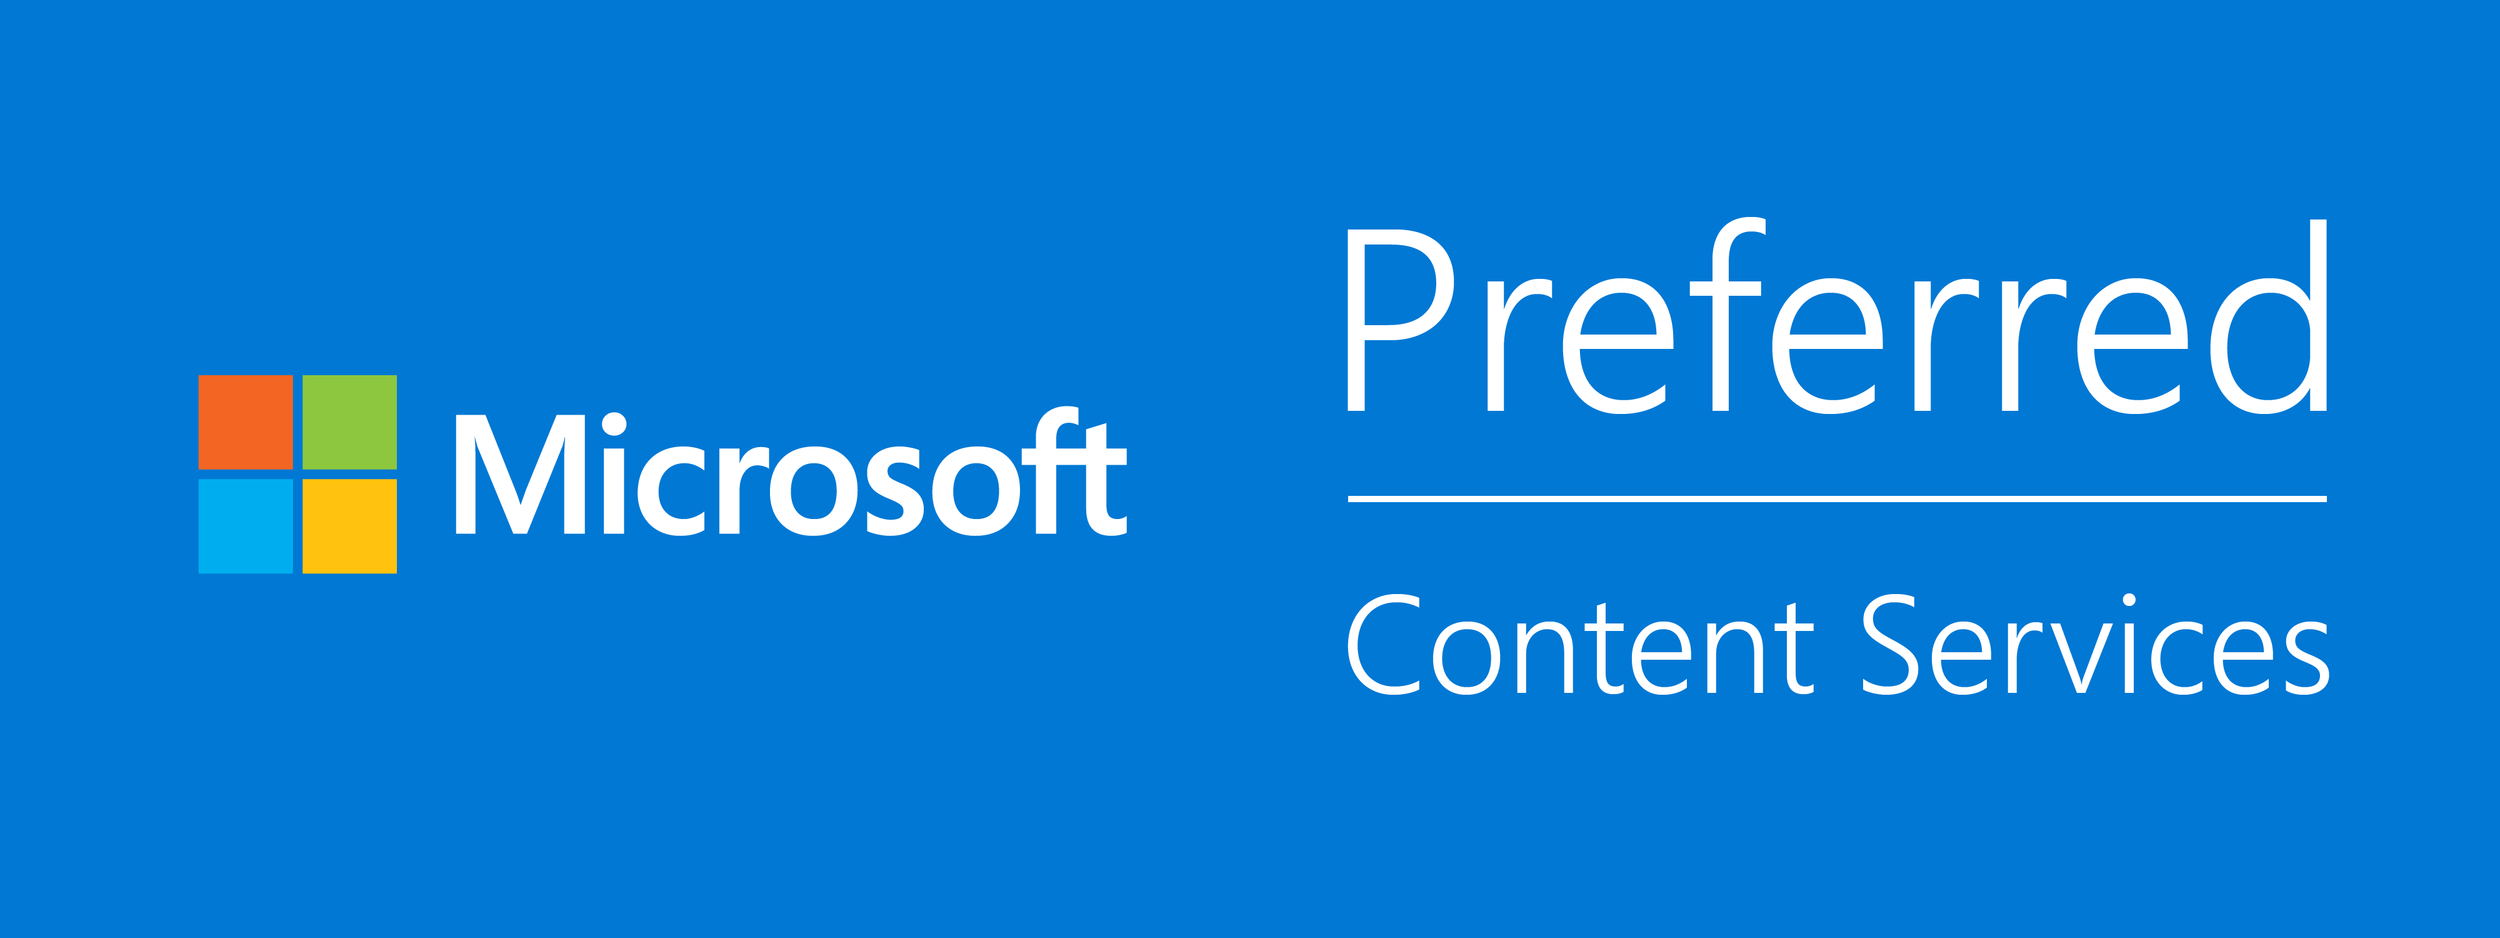 Microsoft preferred partner for SharePoint - Collabware